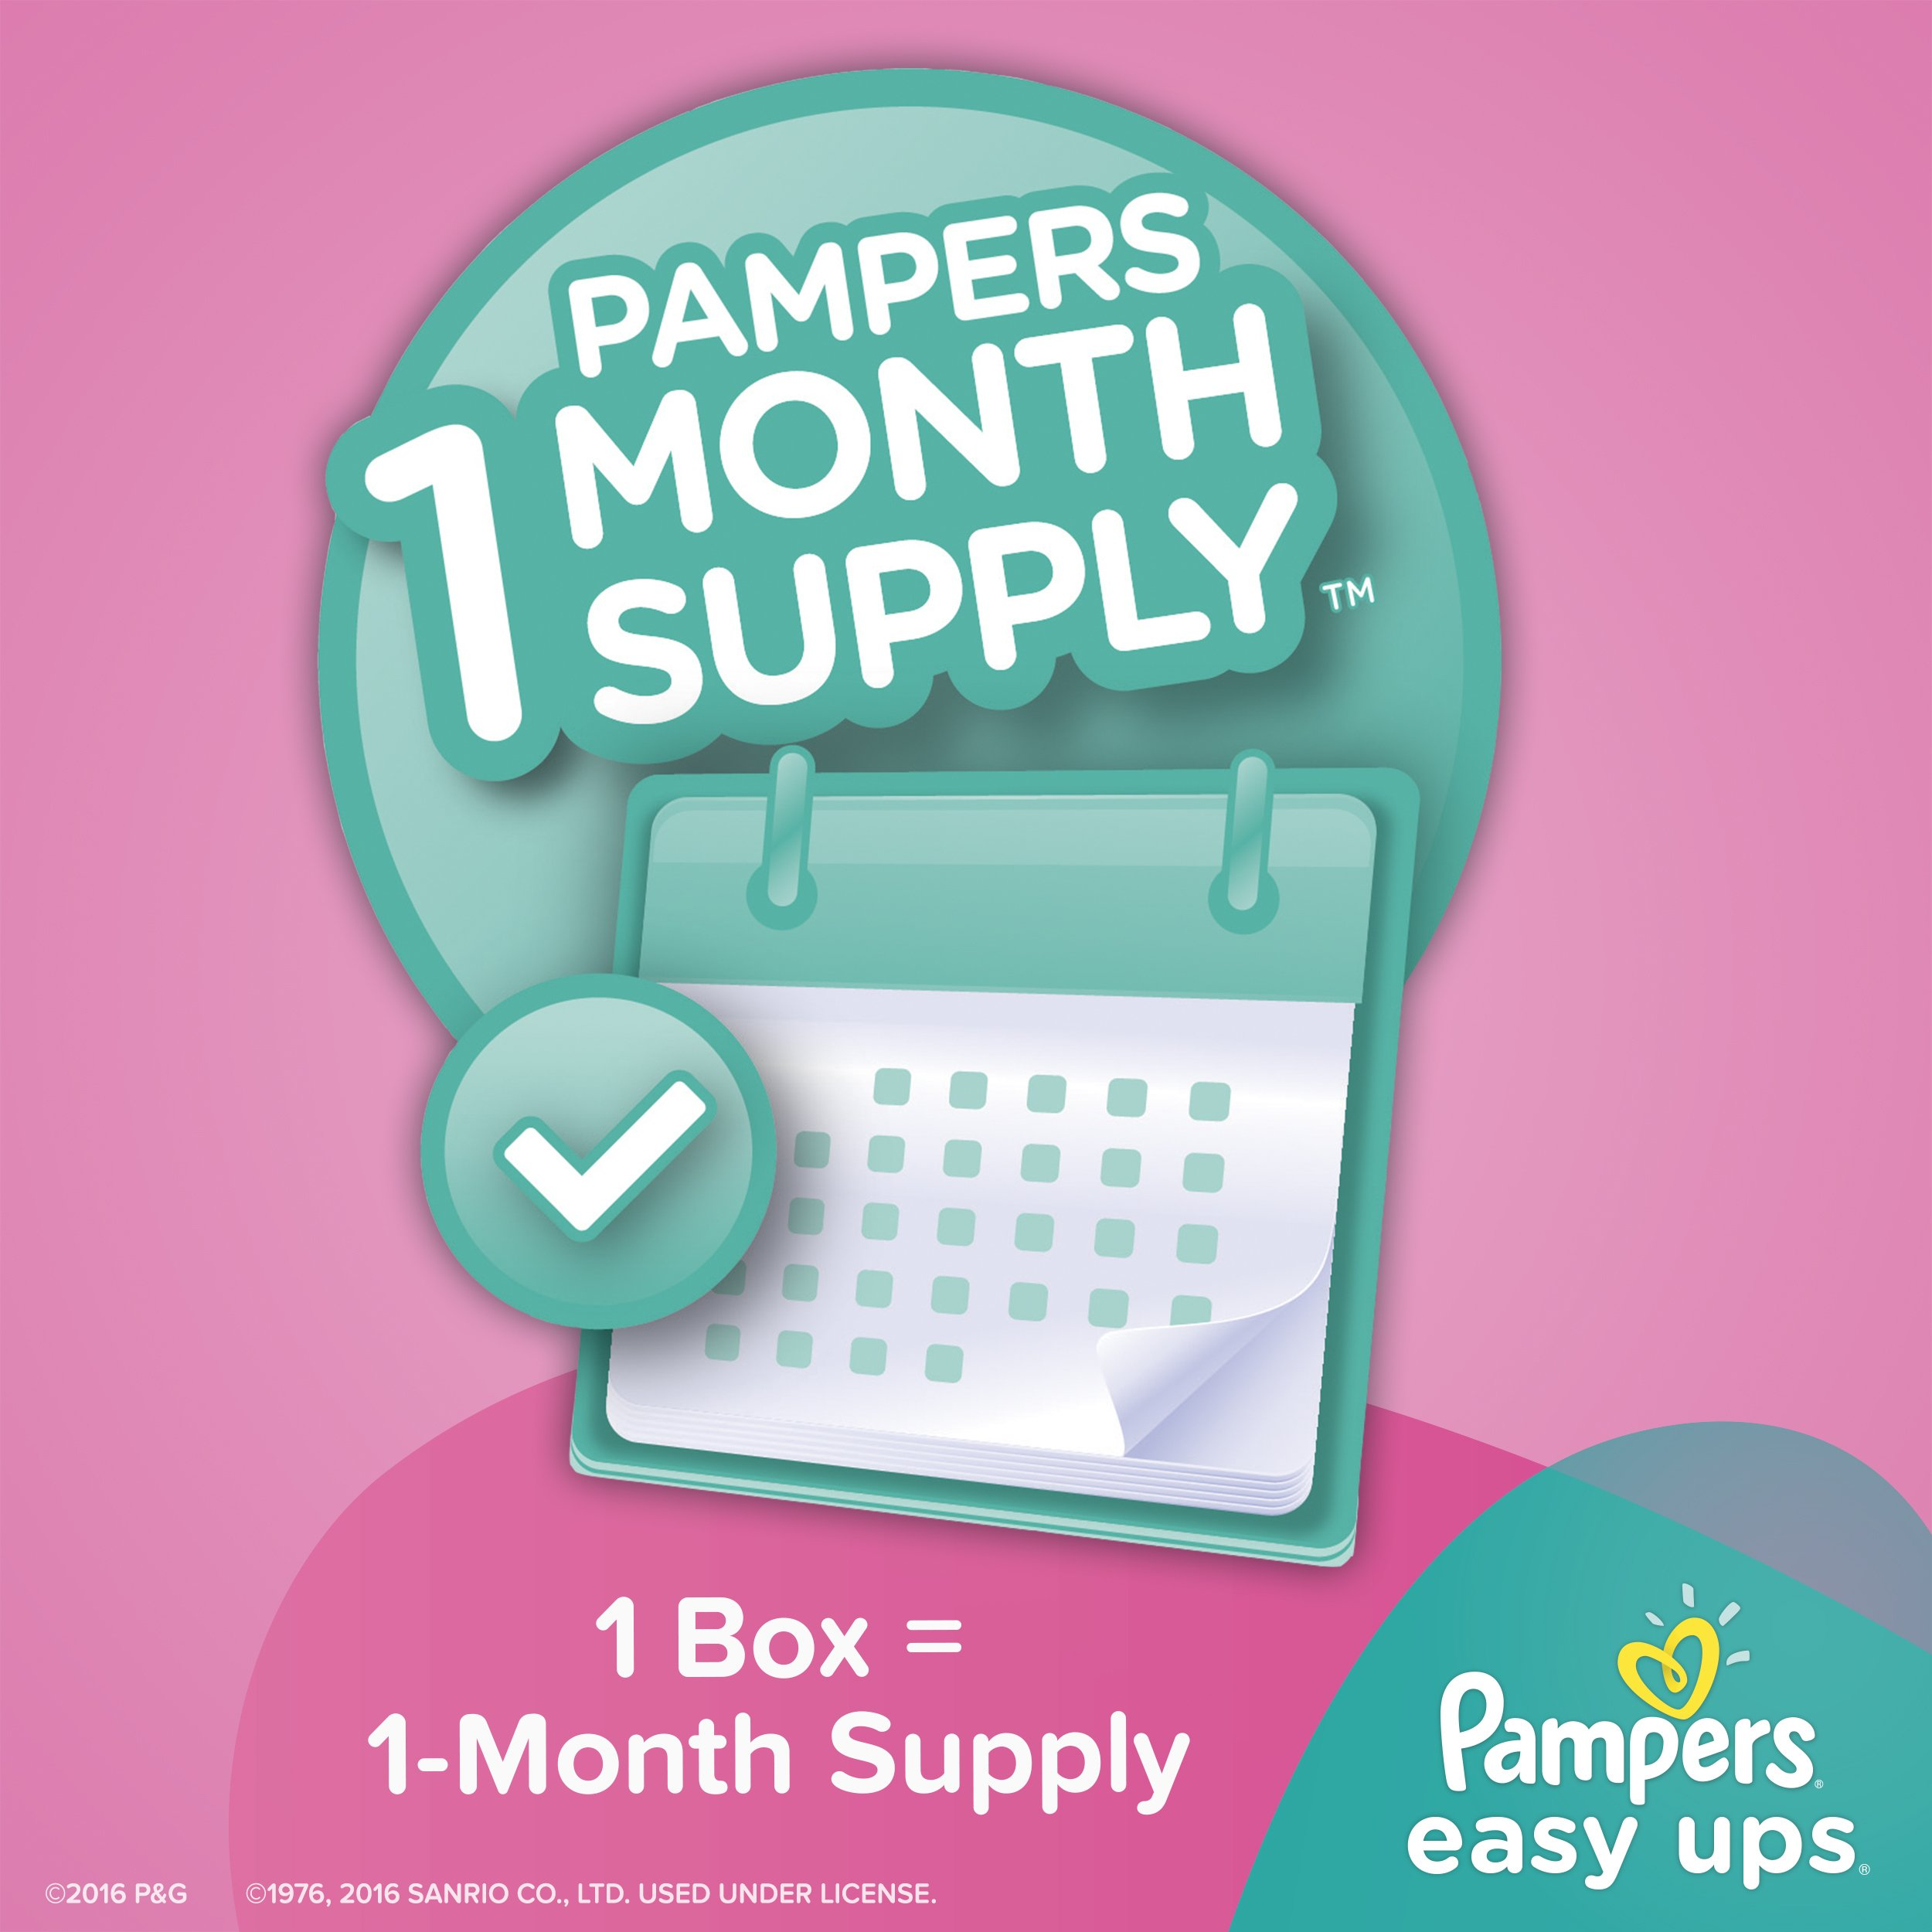 Pampers Easy Ups Training Pants Pull On Disposable Diapers for Girls Size 5 (3T-4T), 148 Count, ONE MONTH SUPPLY by Pampers (Image #3)